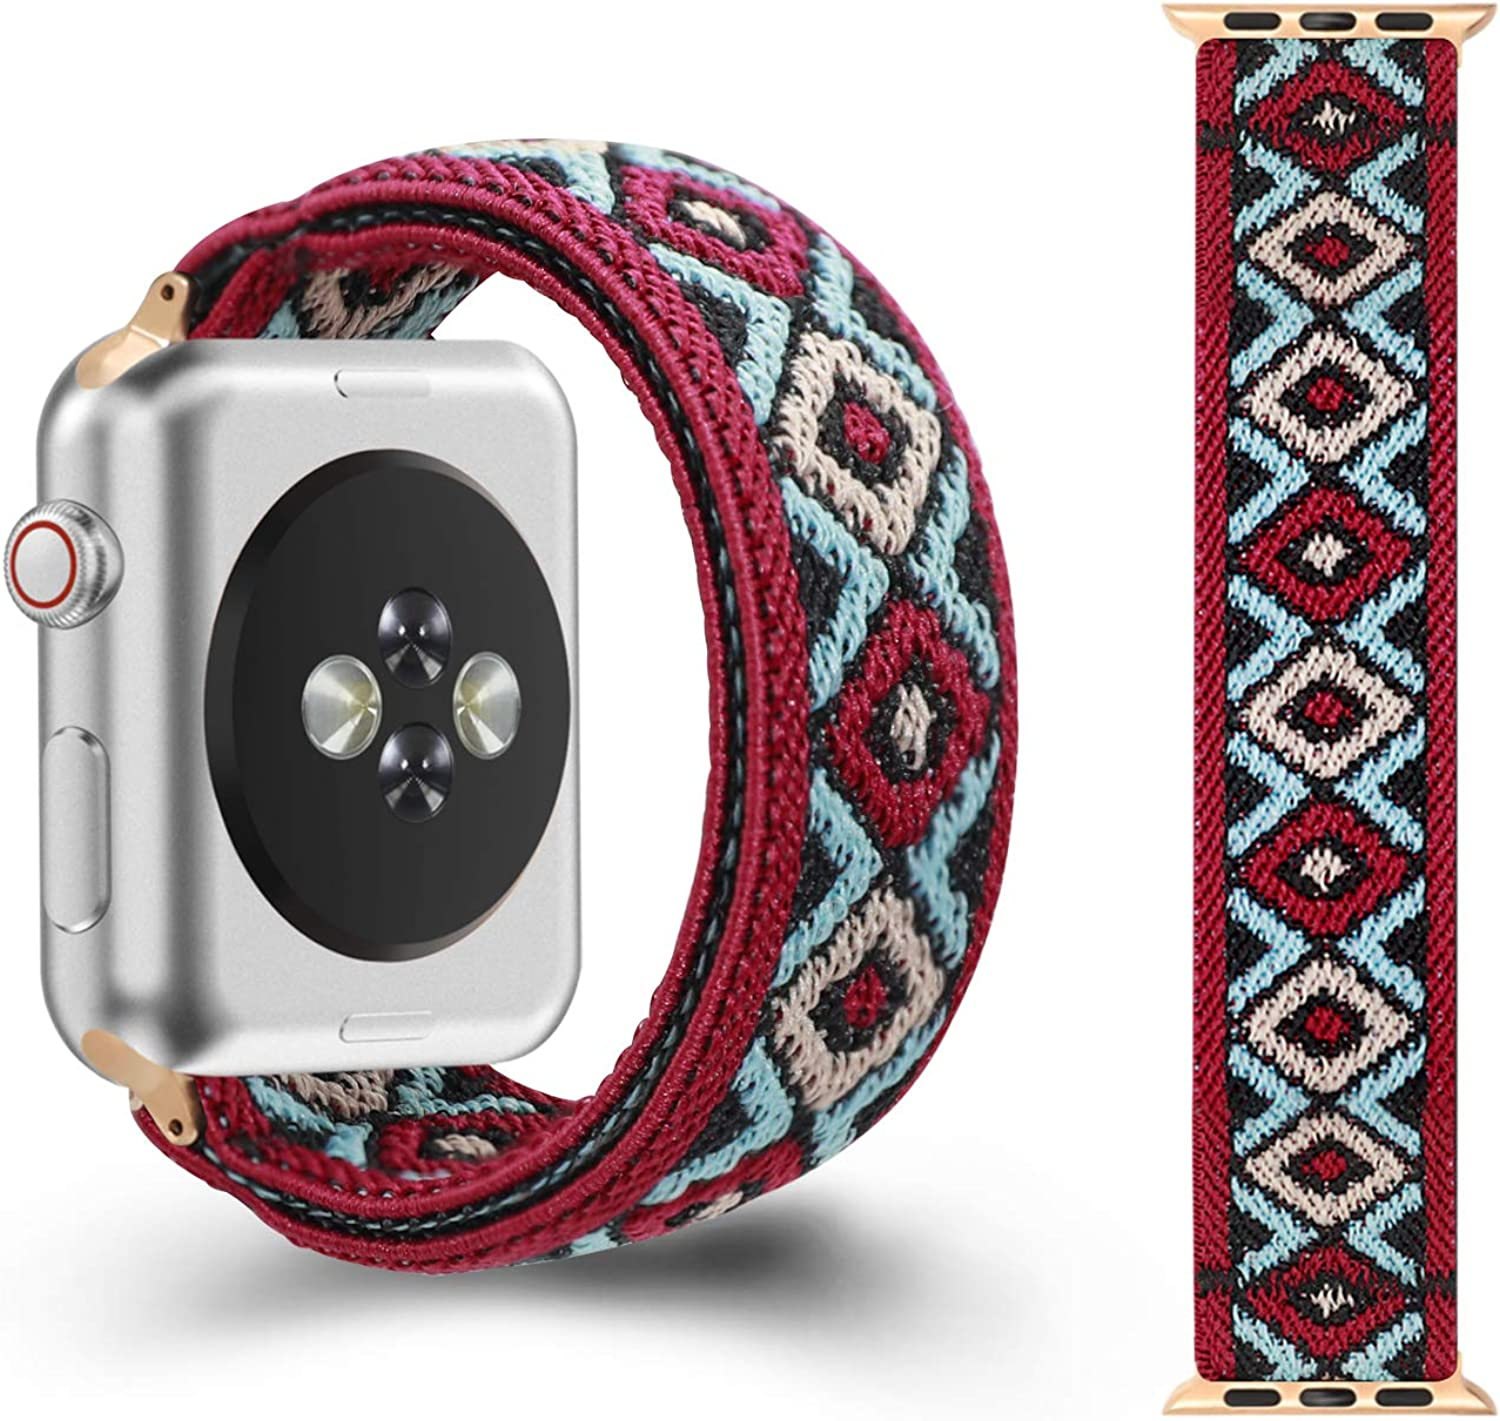 CreateGreat Elastic Bands Compatible with Apple Watch 38MM,40MM, Double Side Elastic Pattern Stretch Bands for 2019 iWatch Series 5 4 3 2 1